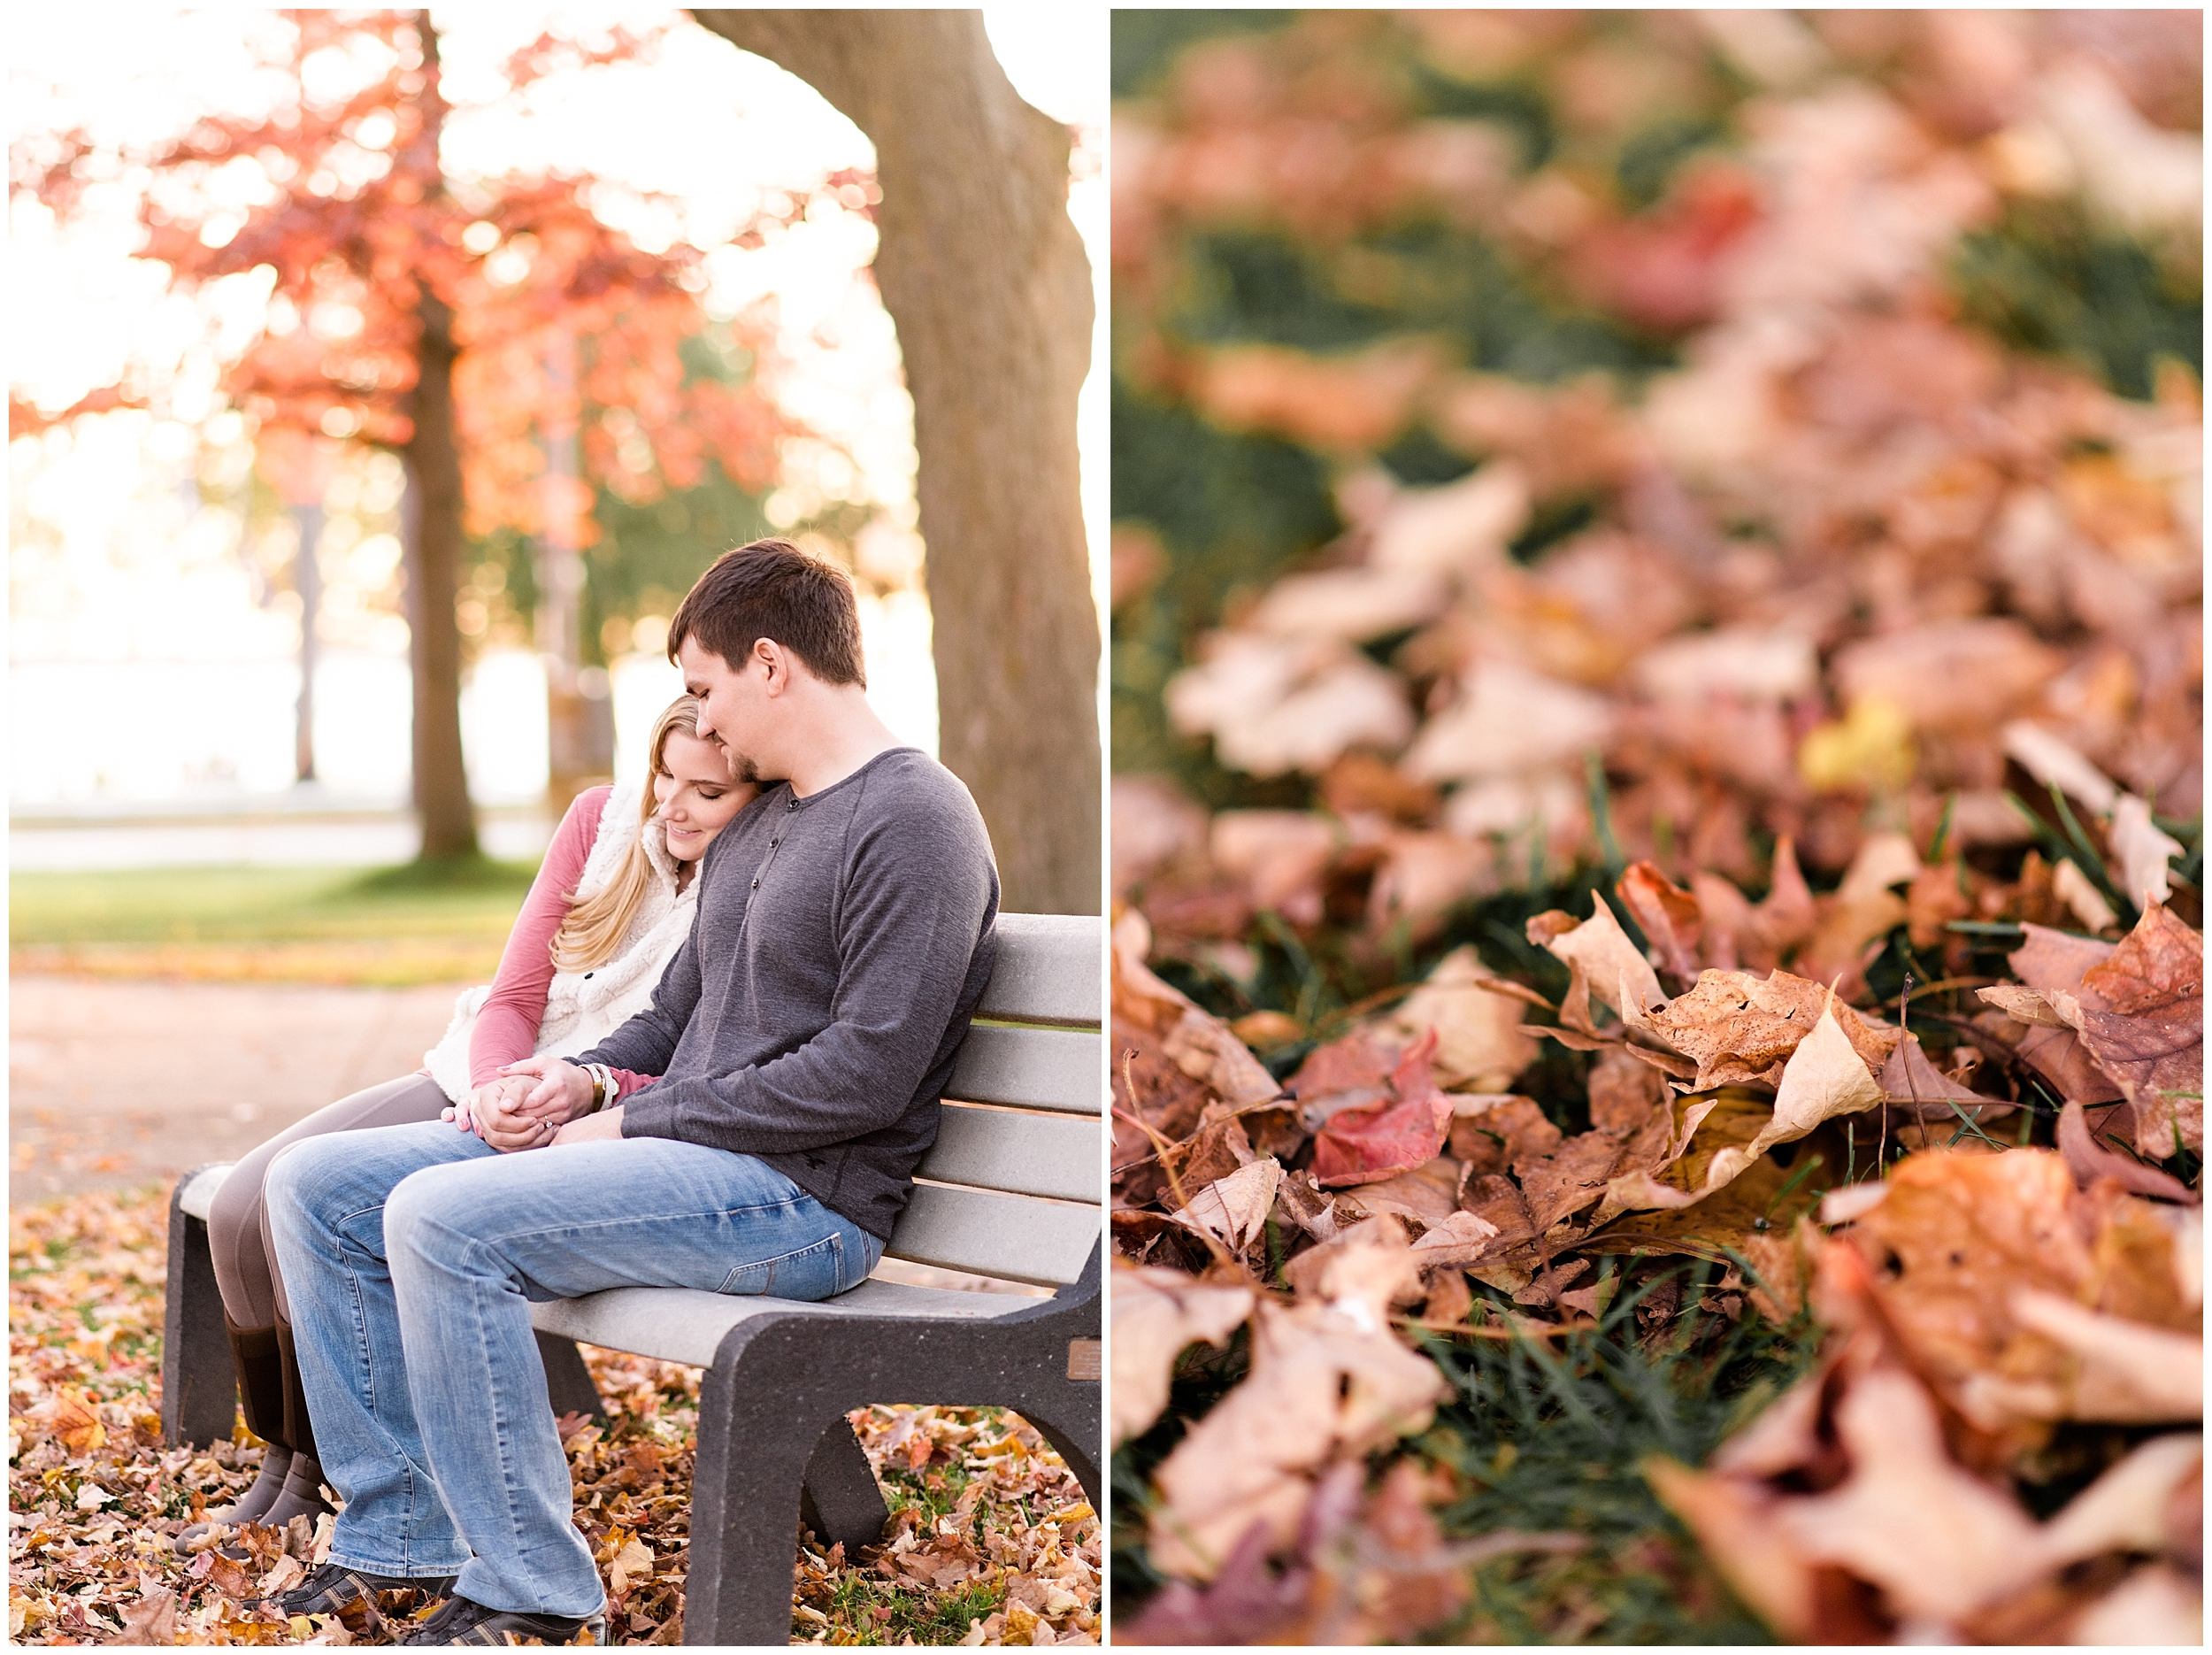 Weddings_by_Raisa_Photography_Cadillac_Michigan_October_Fall_Engagement_Milwaukee_Wisconsin_Photographer_0018.jpg